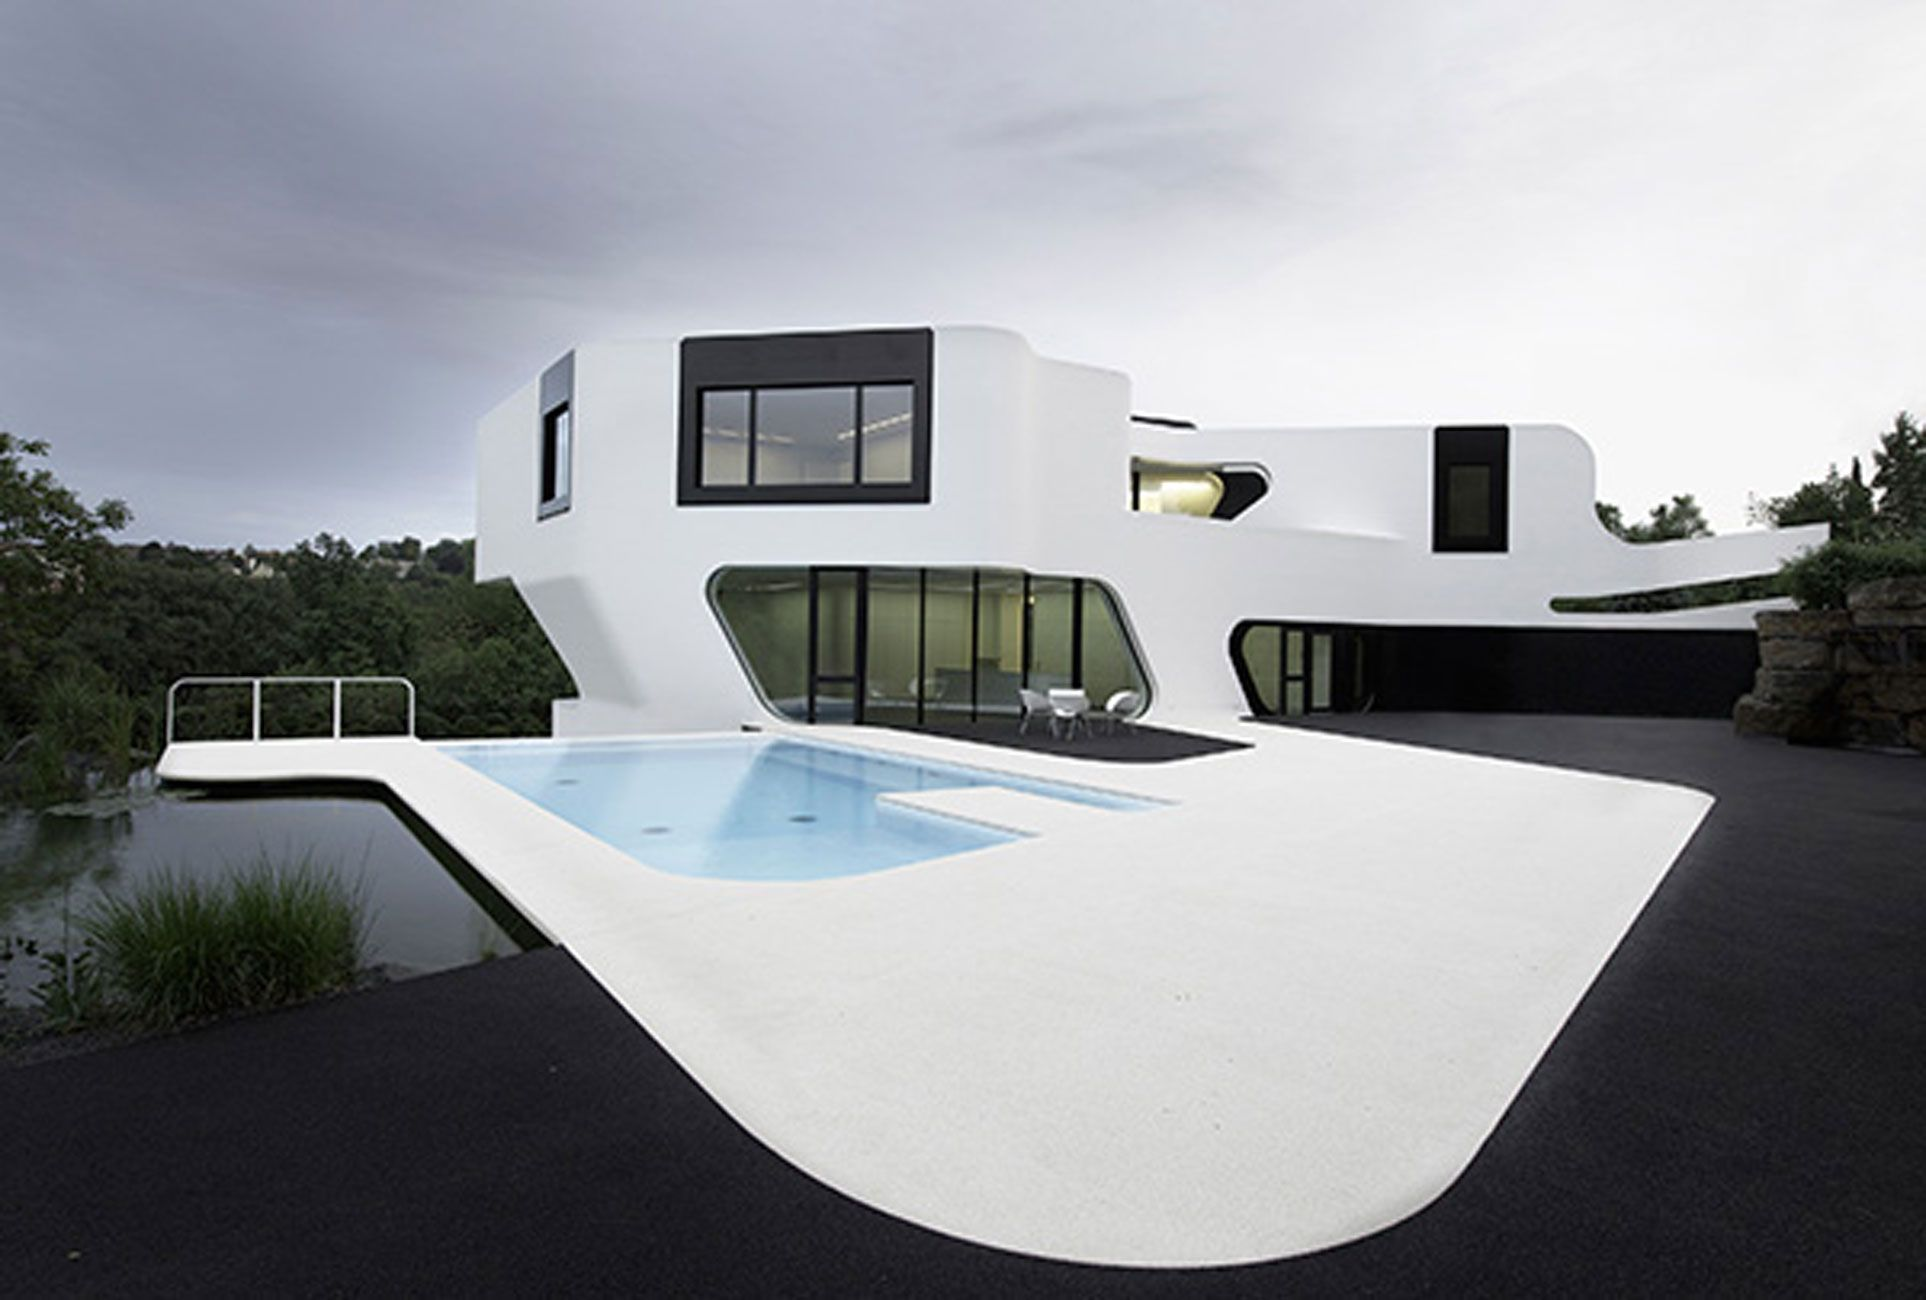 Contemporary Residence With Futuristic Design In Germany   Pool. Picture  From: Viahouse.com